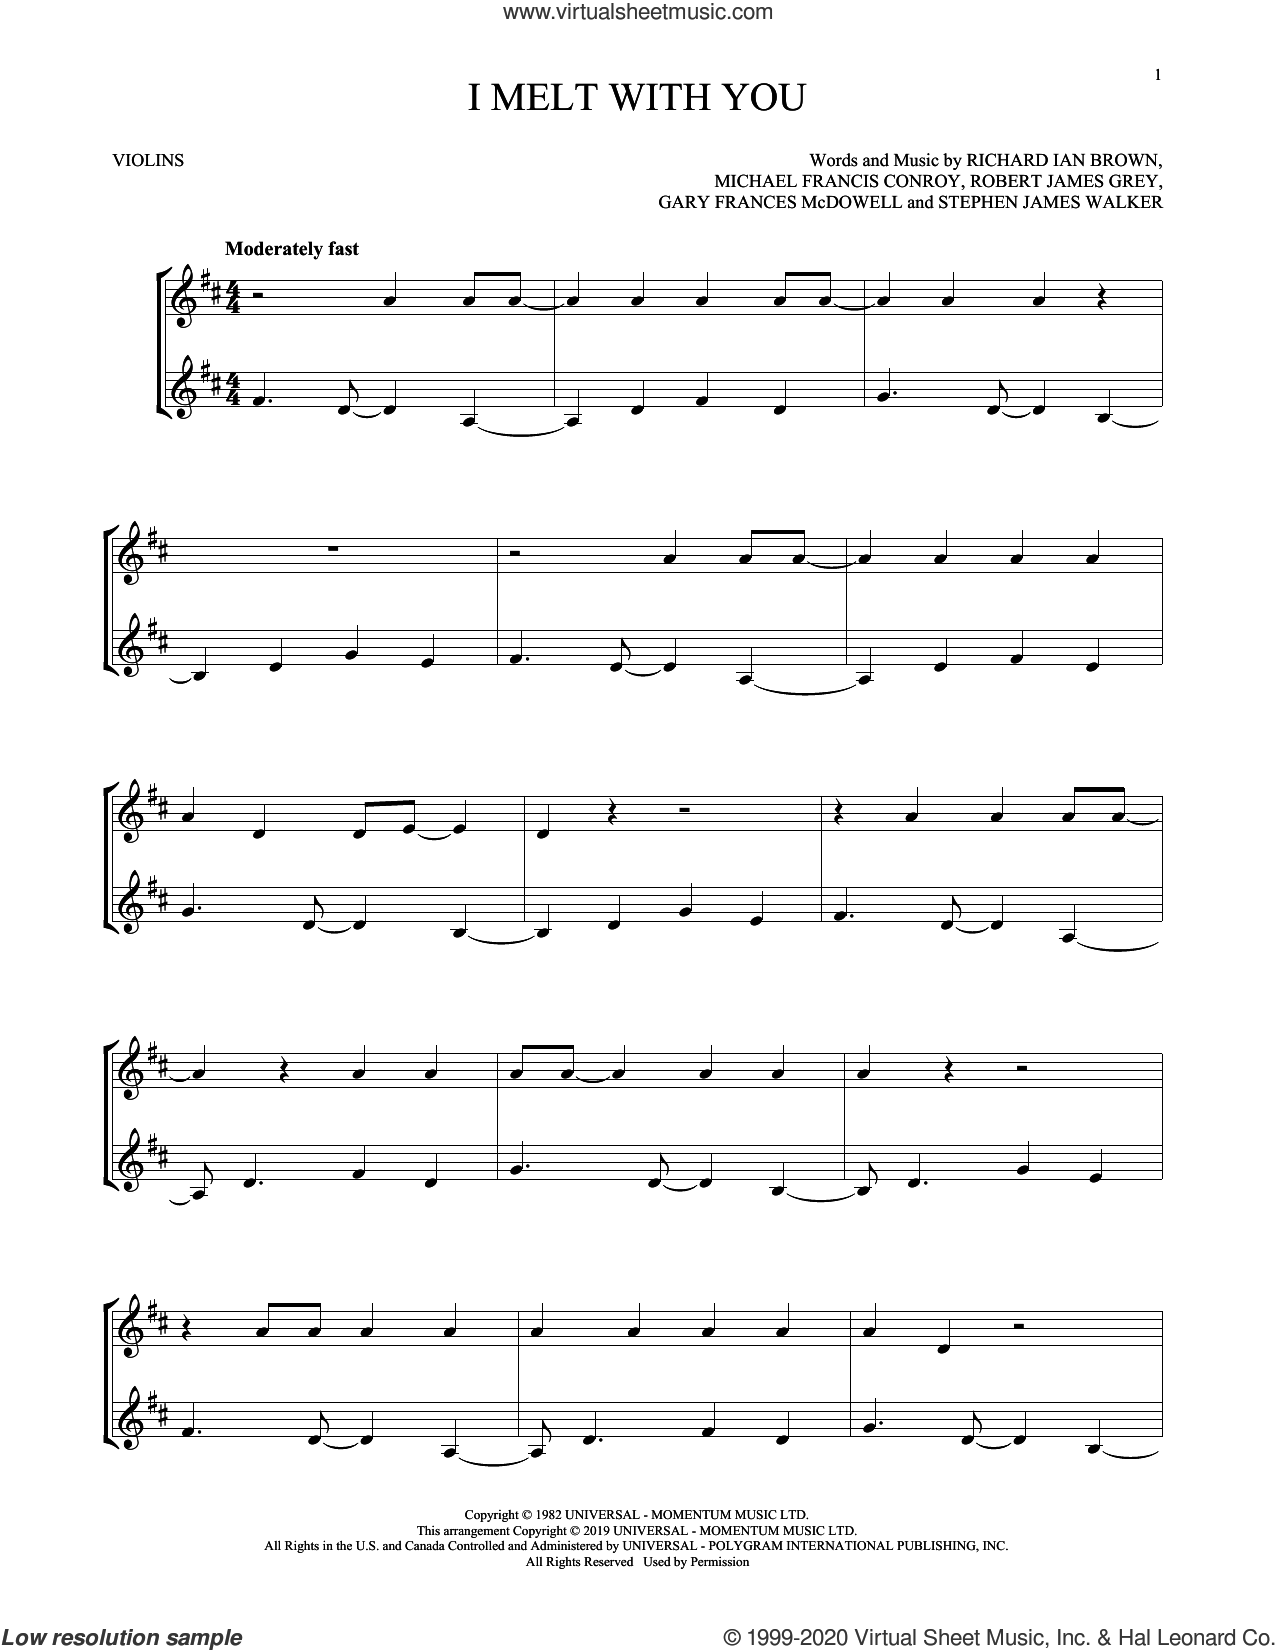 I Melt With You sheet music for two violins (duets, violin duets) by Modern English, Gary Frances McDowell, Michael Francis Conroy, Richard Ian Brown, Robert James Grey and Stephen James Walker, intermediate skill level